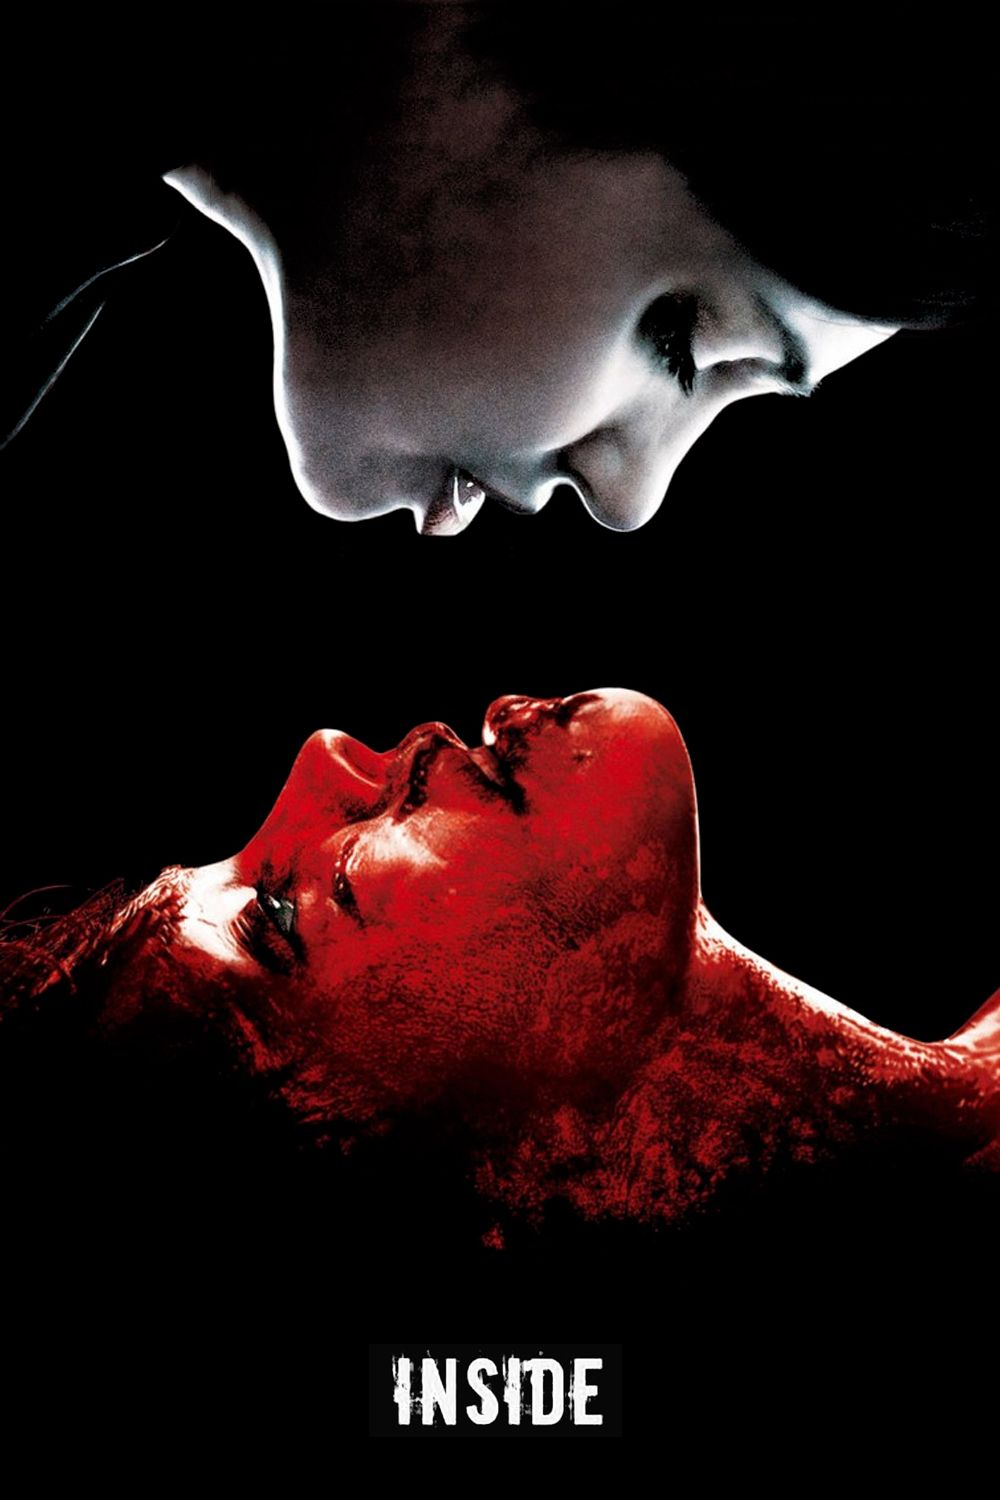 12 More Truly Awesome And Deranged Horror Films You May Have Missed Moviepilot New Stories For Upcoming Movies Horror Movies Horror Films Scary Movies